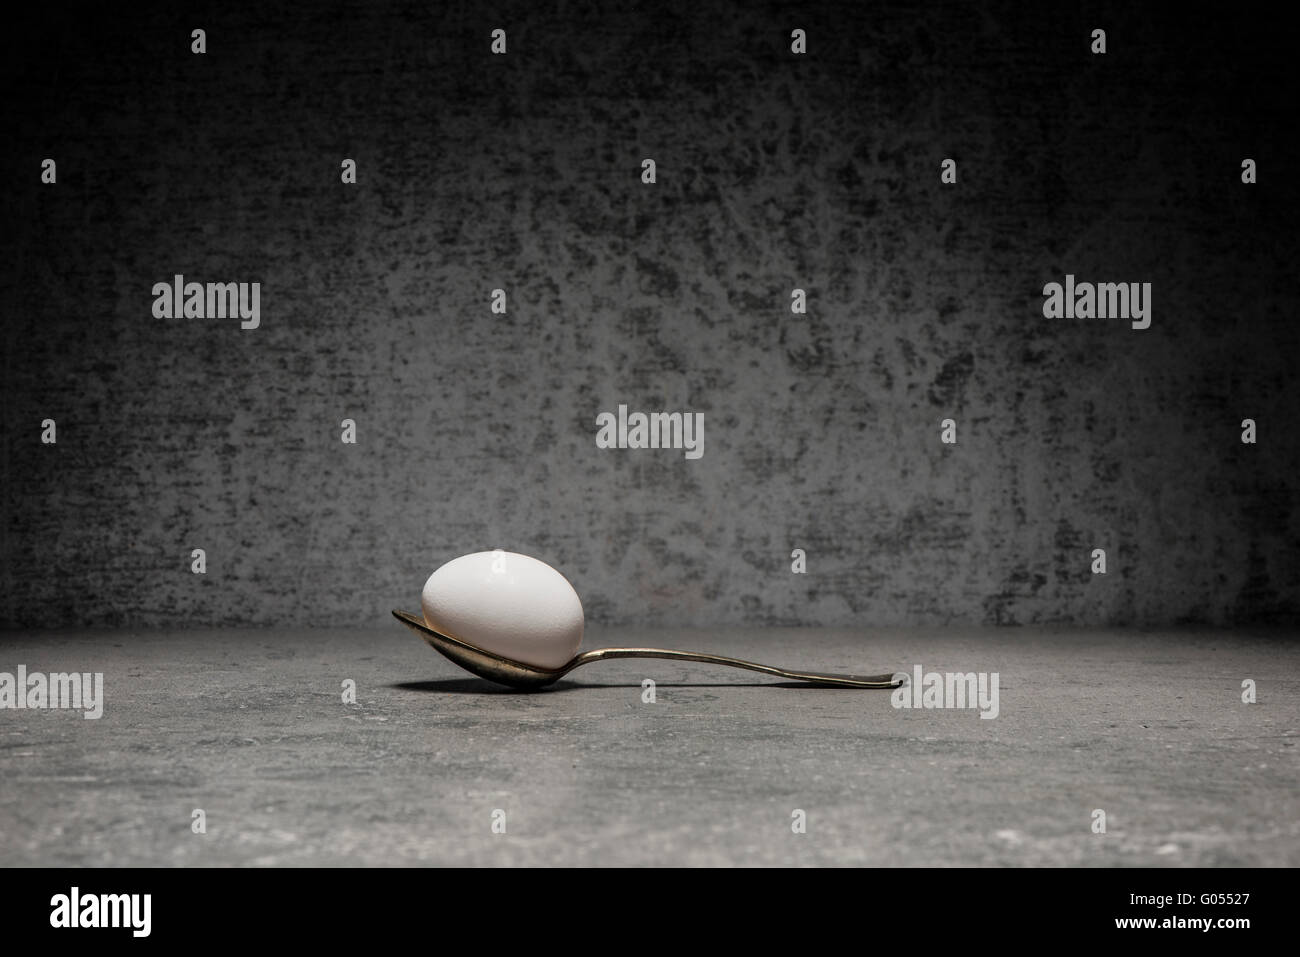 Egg and spoon still life. Conceptual image with simplicity and copy space. - Stock Image